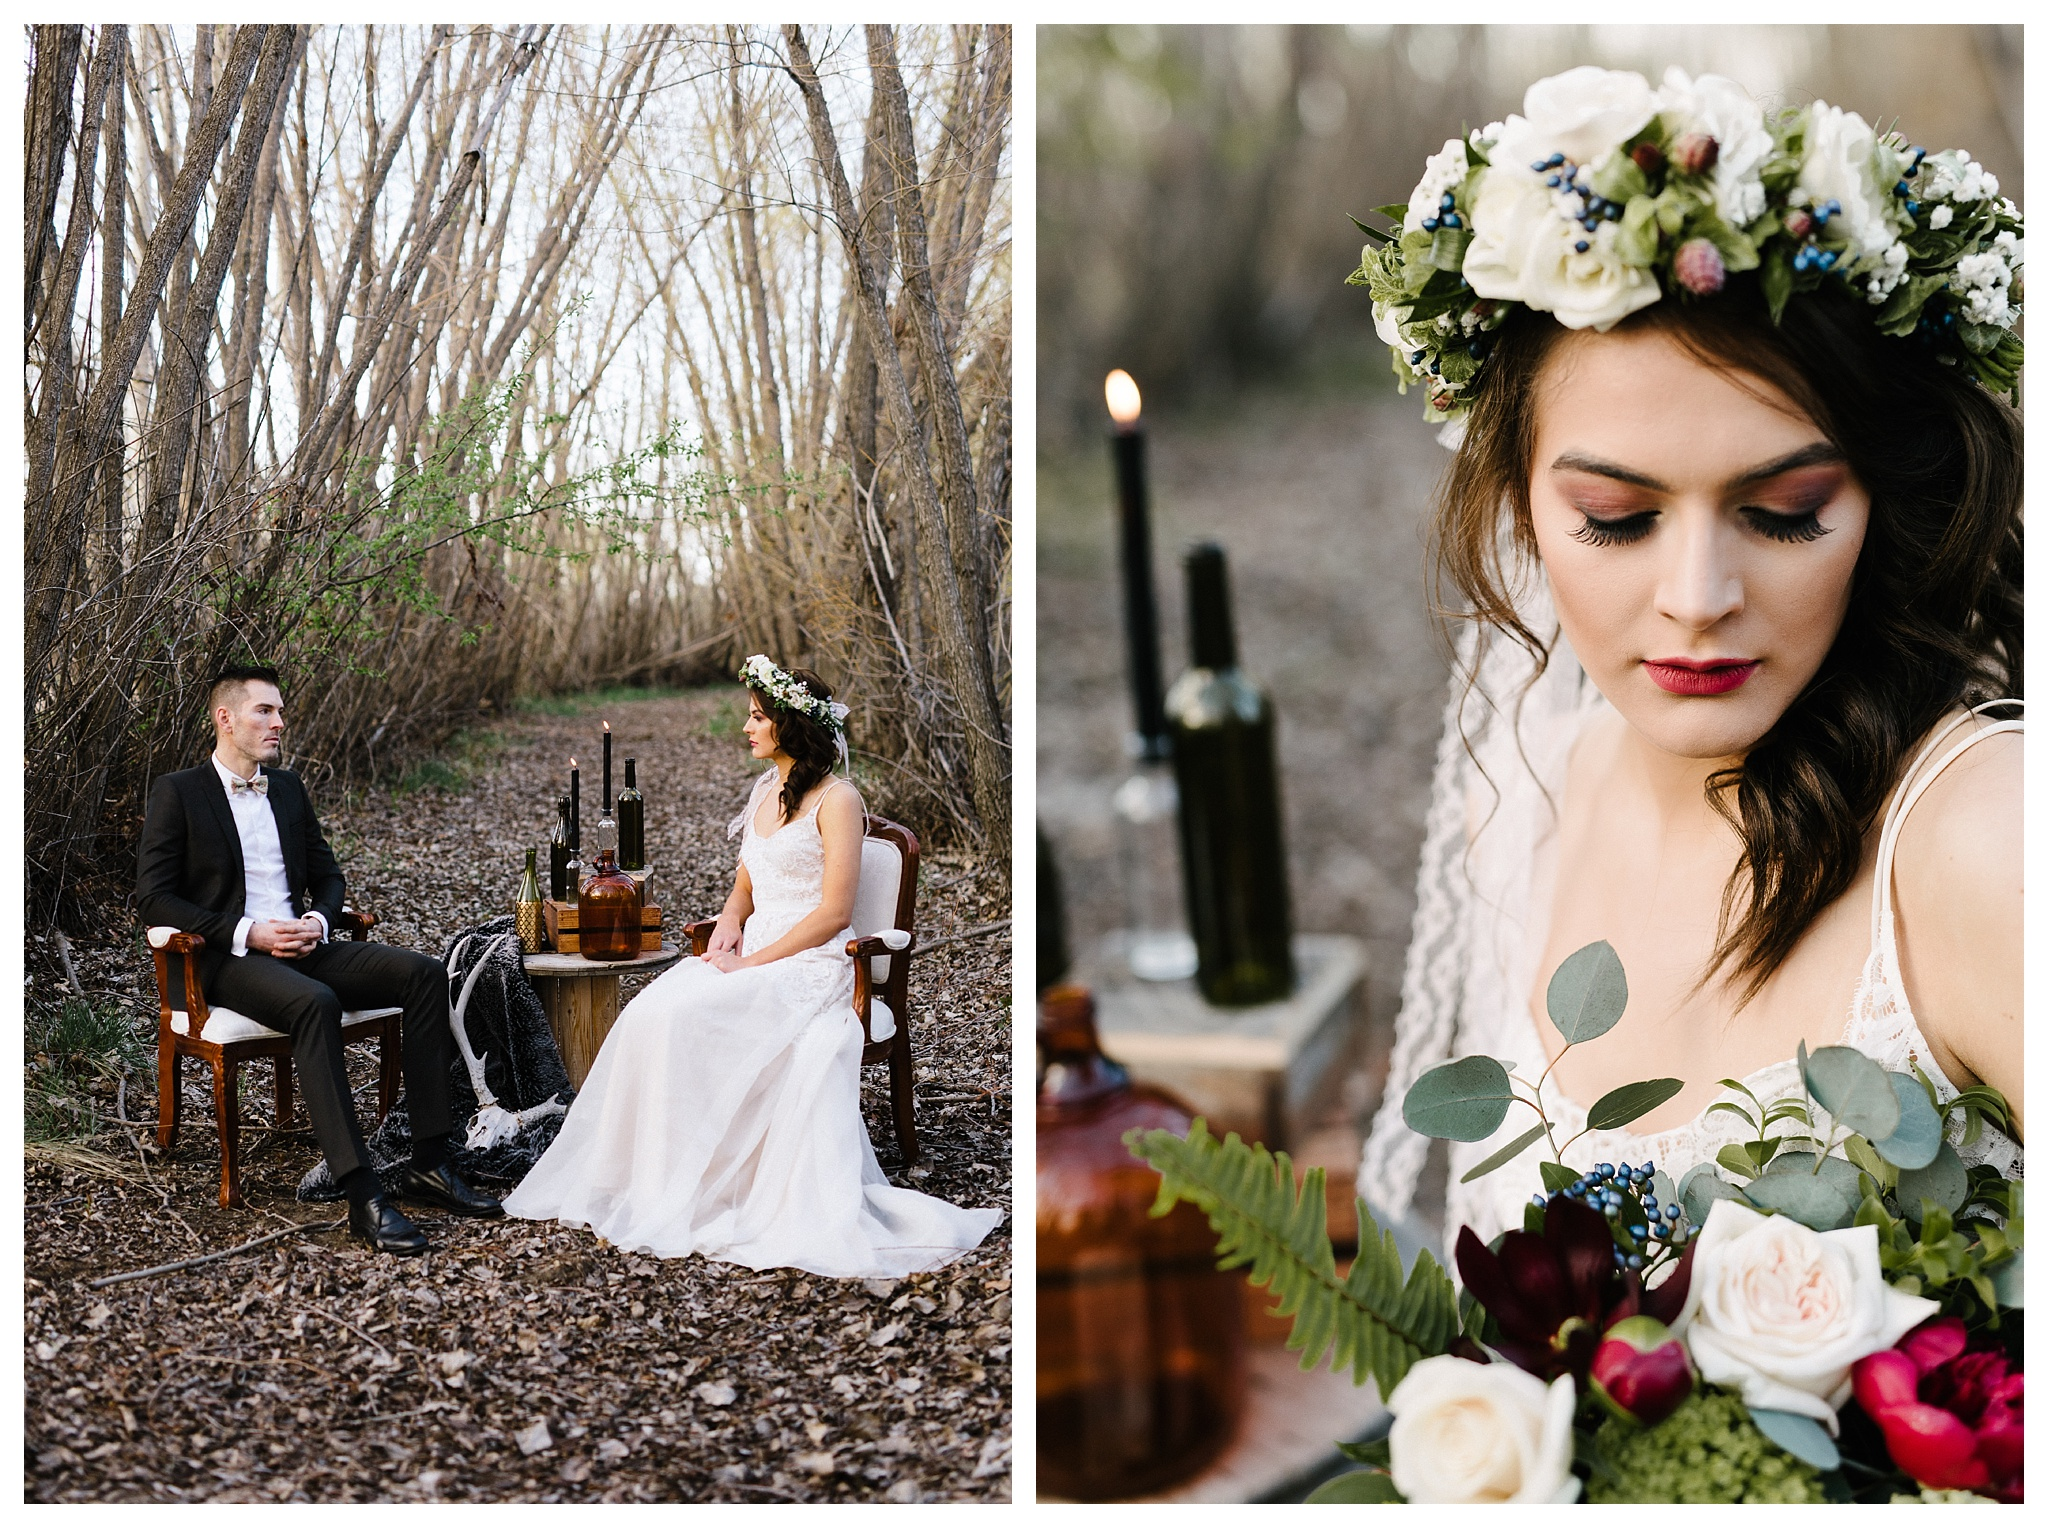 Design + Decor- Events by Natalie Noel. Head wreath and bouquet by Fresh Flowers. Photography by Schae Photography.